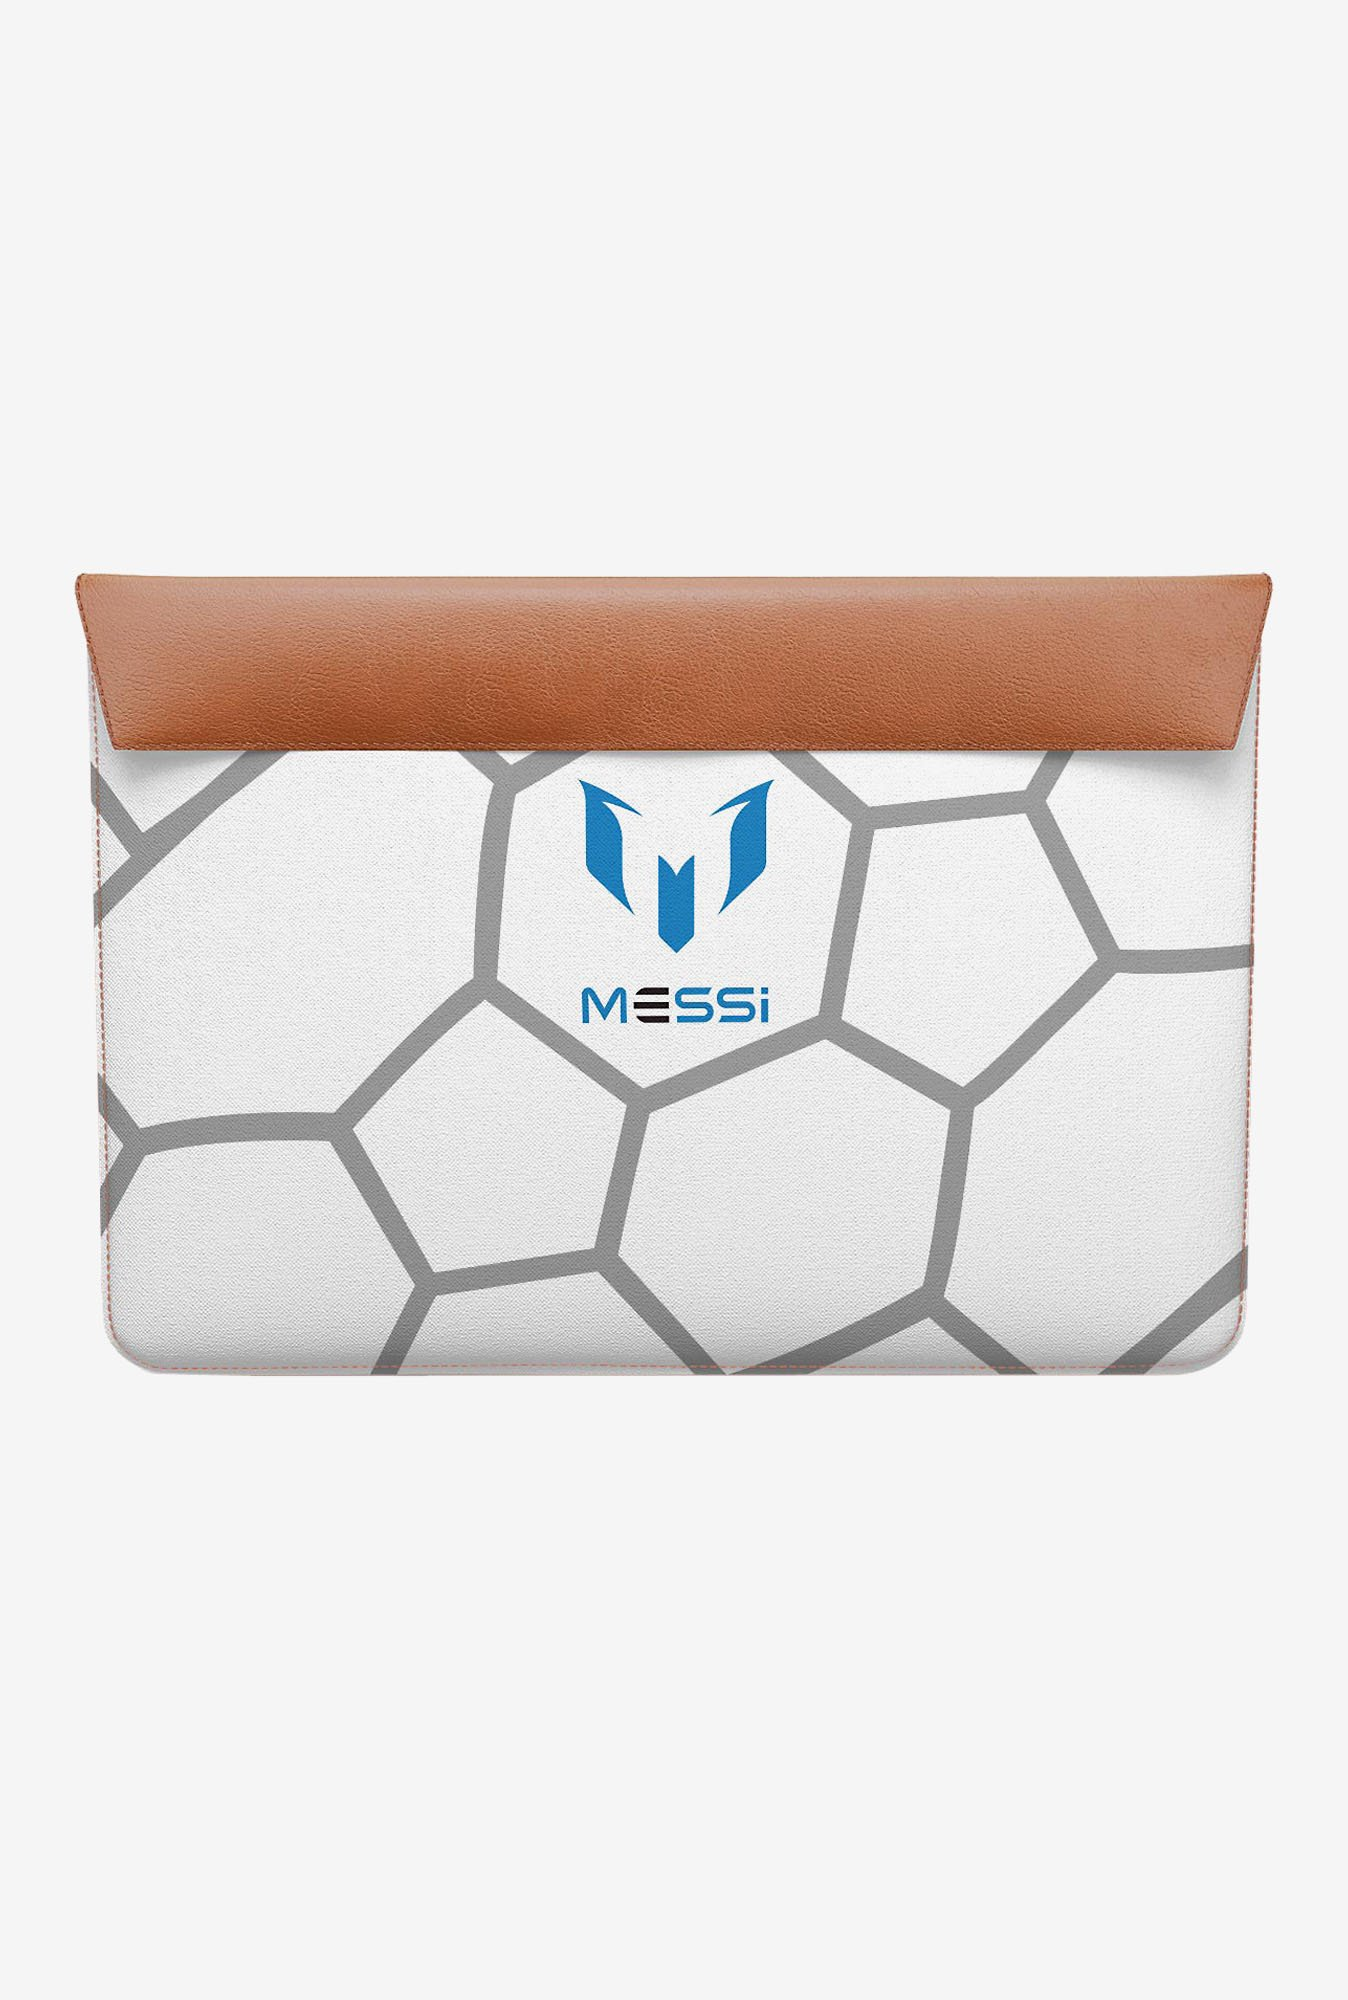 DailyObjects Messi Honeycomb MacBook Air 11 Envelope Sleeve